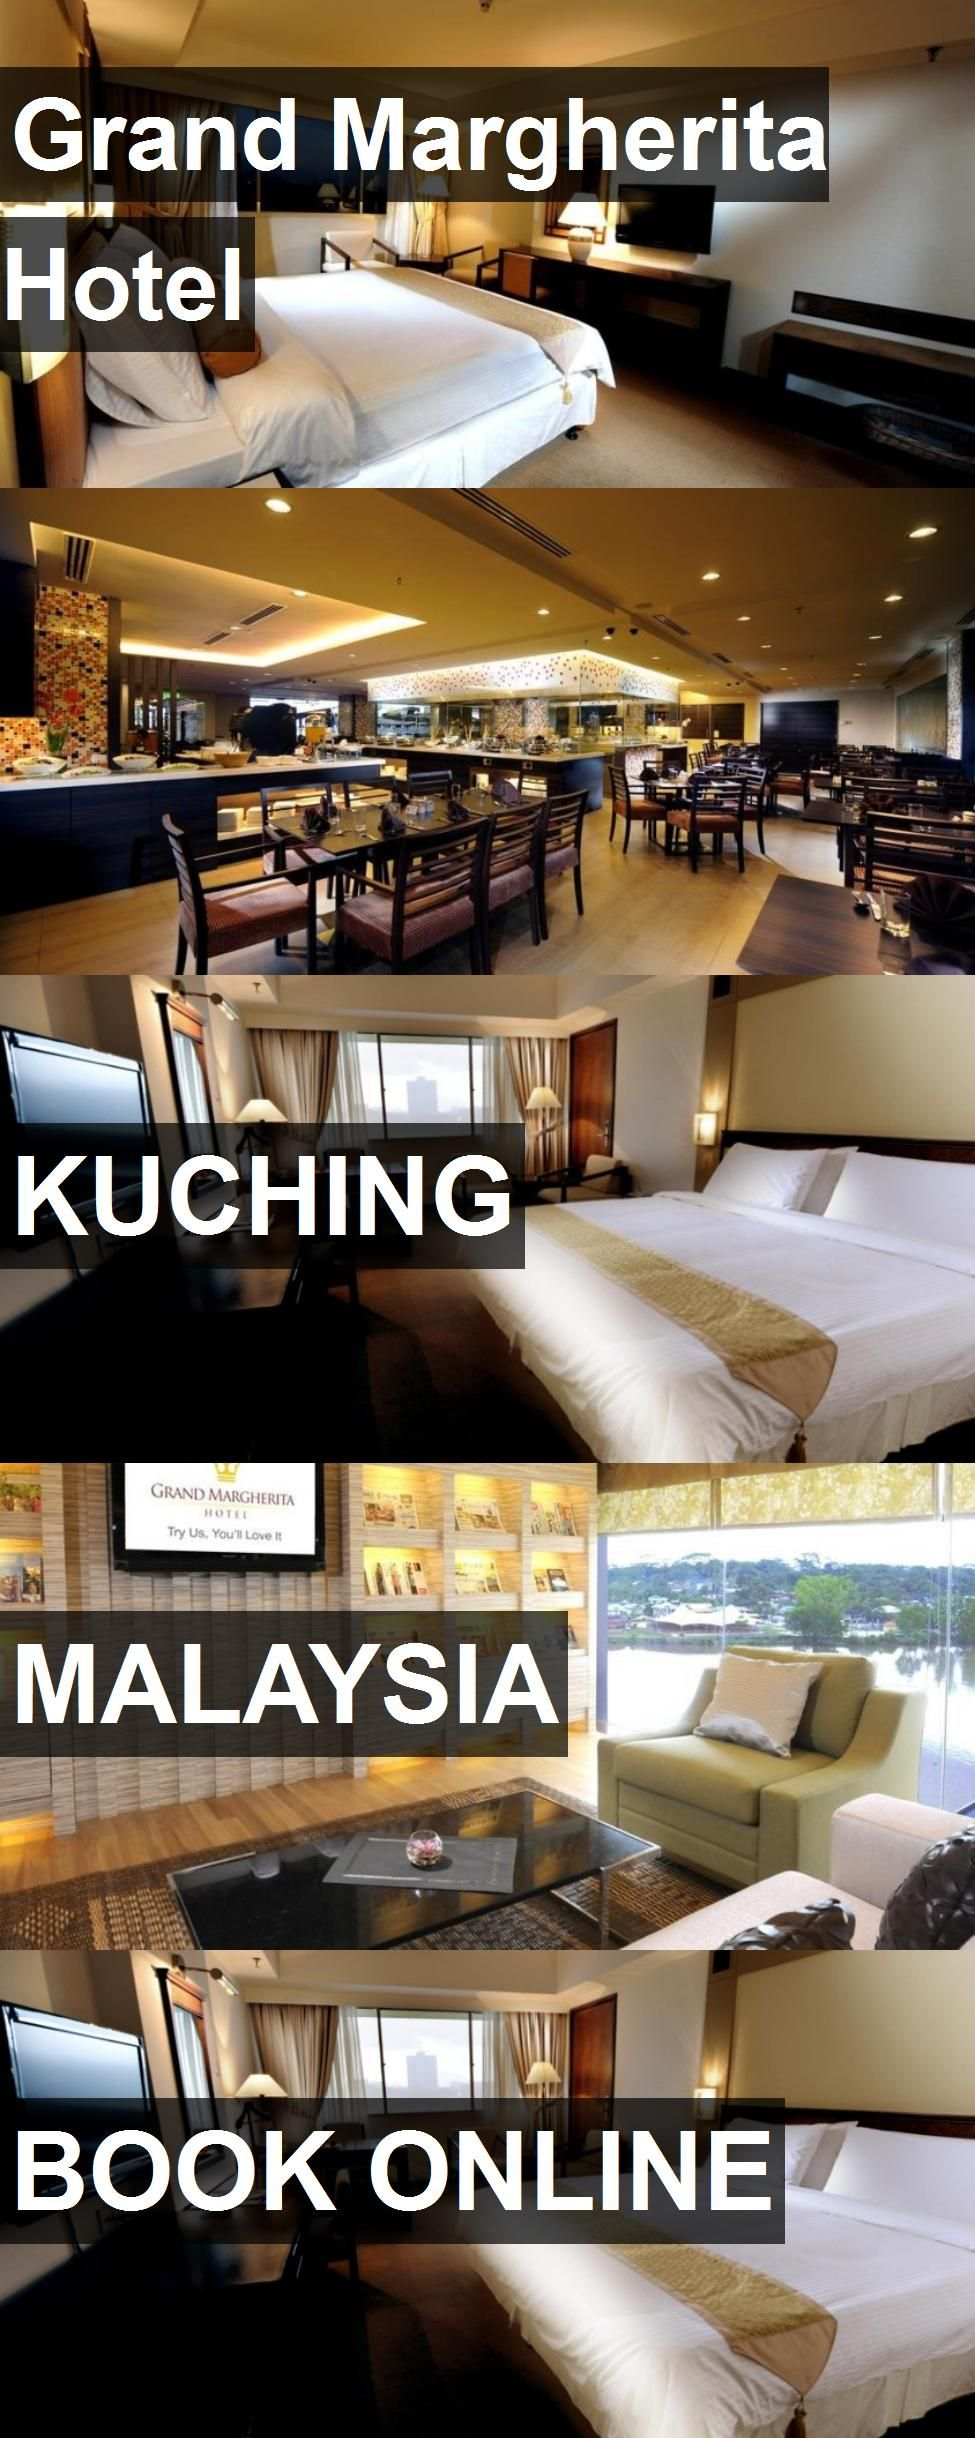 Grand Margherita Hotel In Kuching, Malaysia. For More